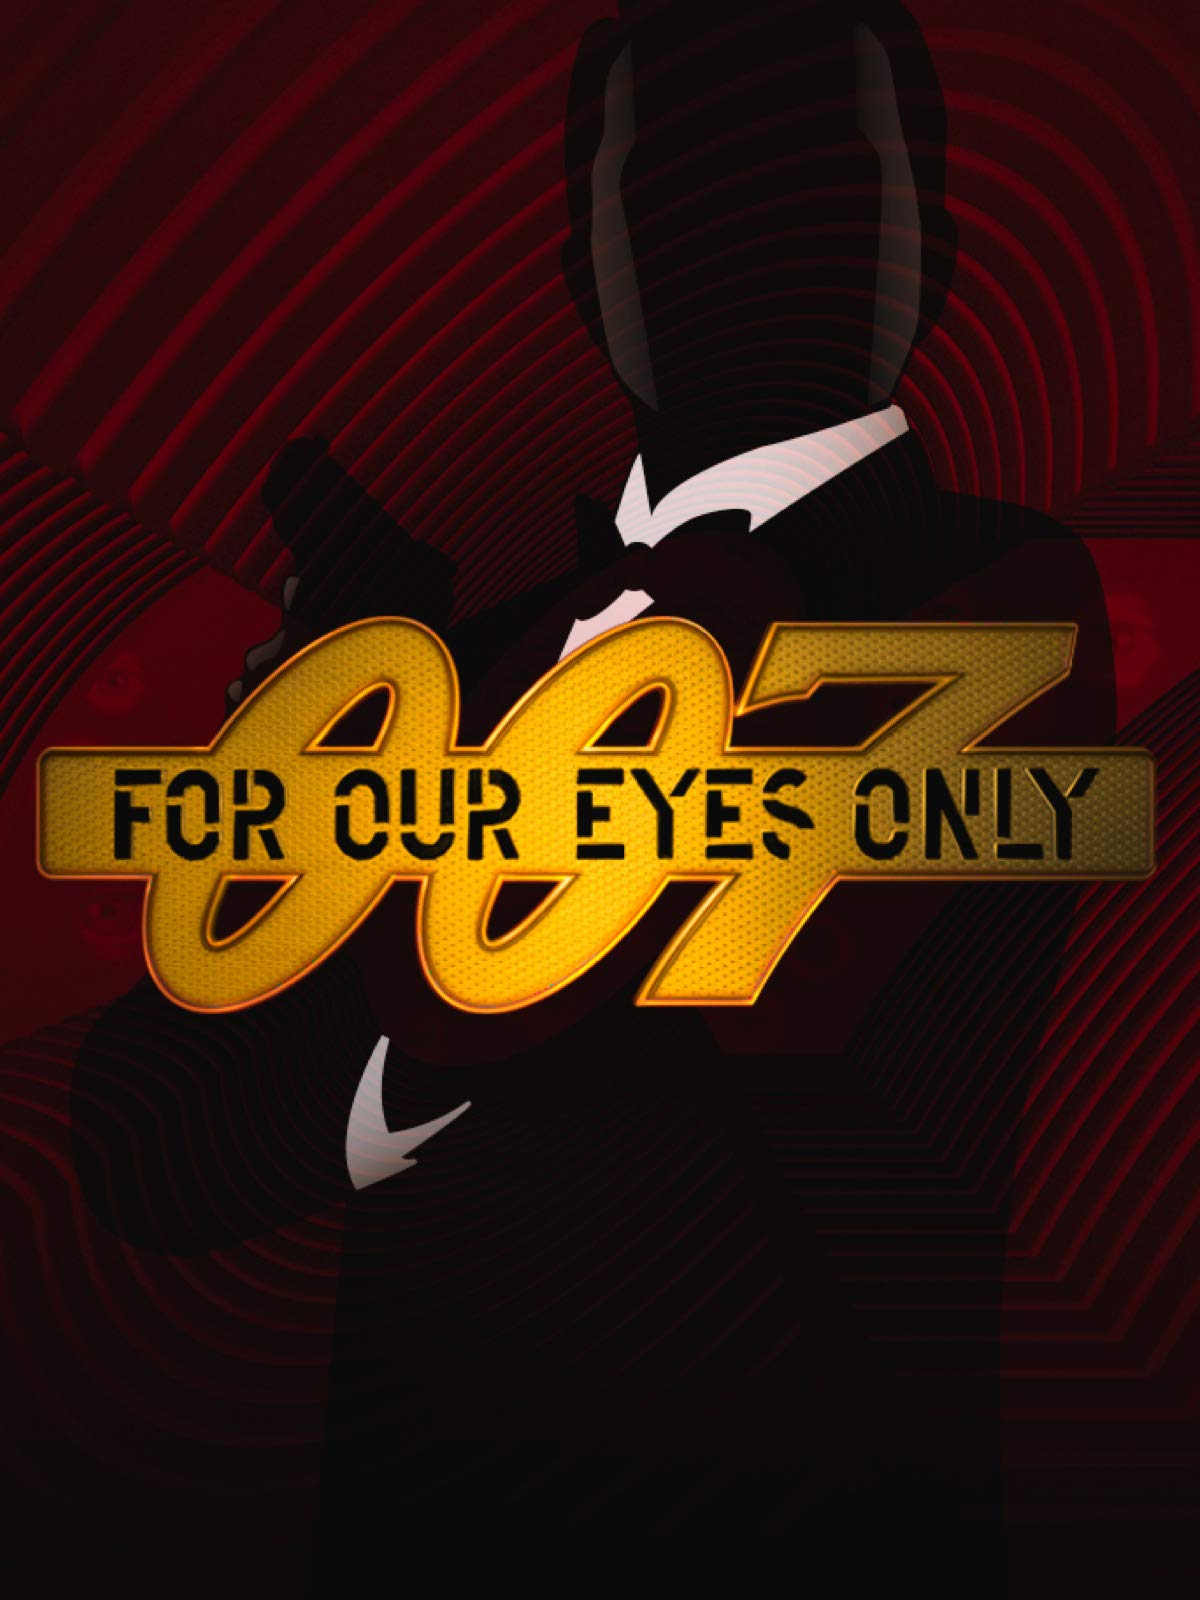 007: For Our Eyes Only